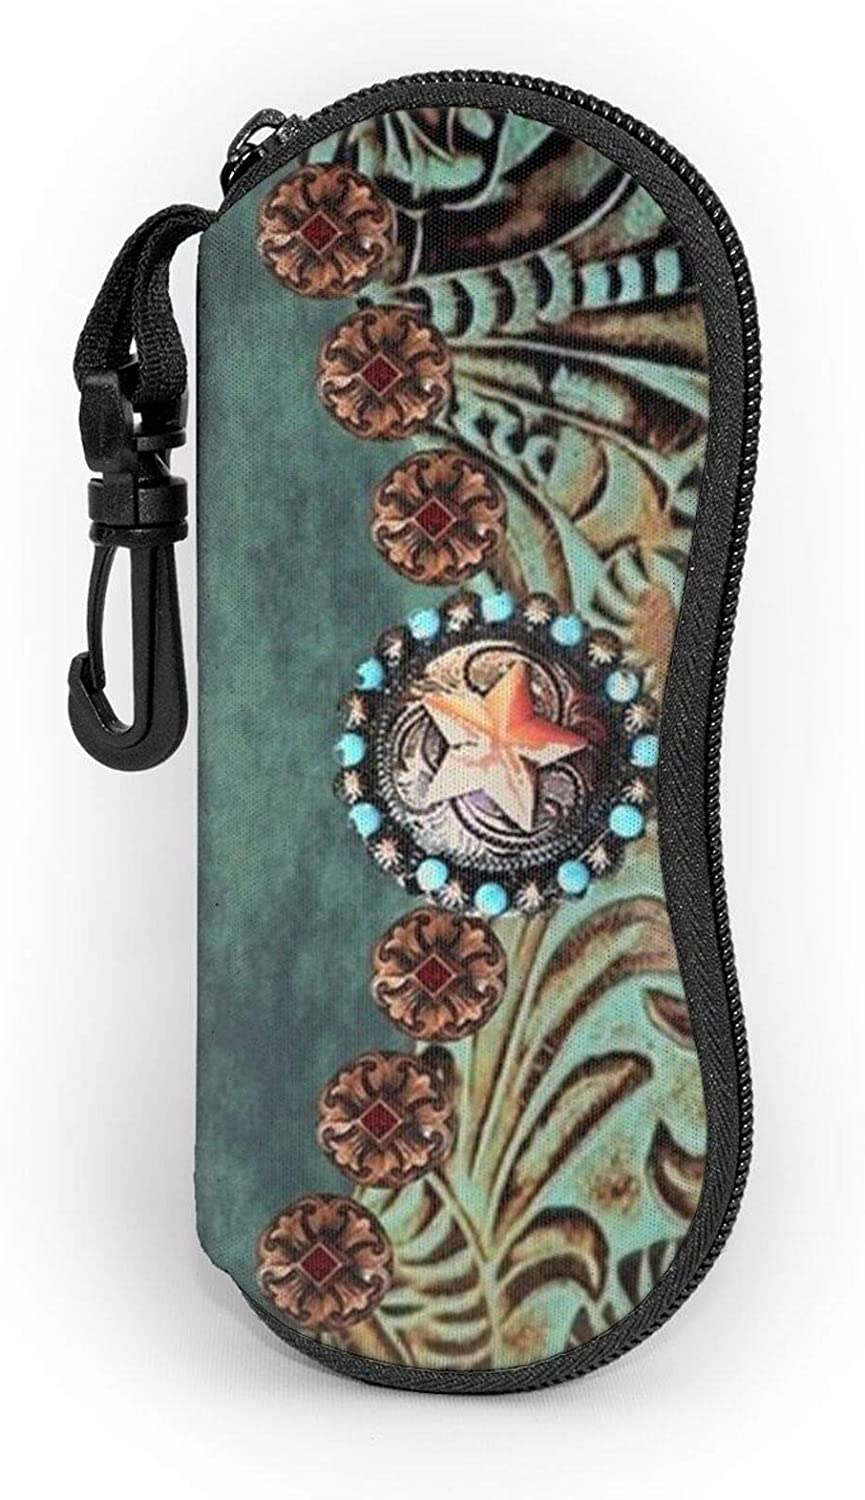 Sunglasses Soft Zip Case Eyeglass Cases with Belt Clip Western Turquoise Tooled Leather Rustic Star Ultra Light Glasses Pouch